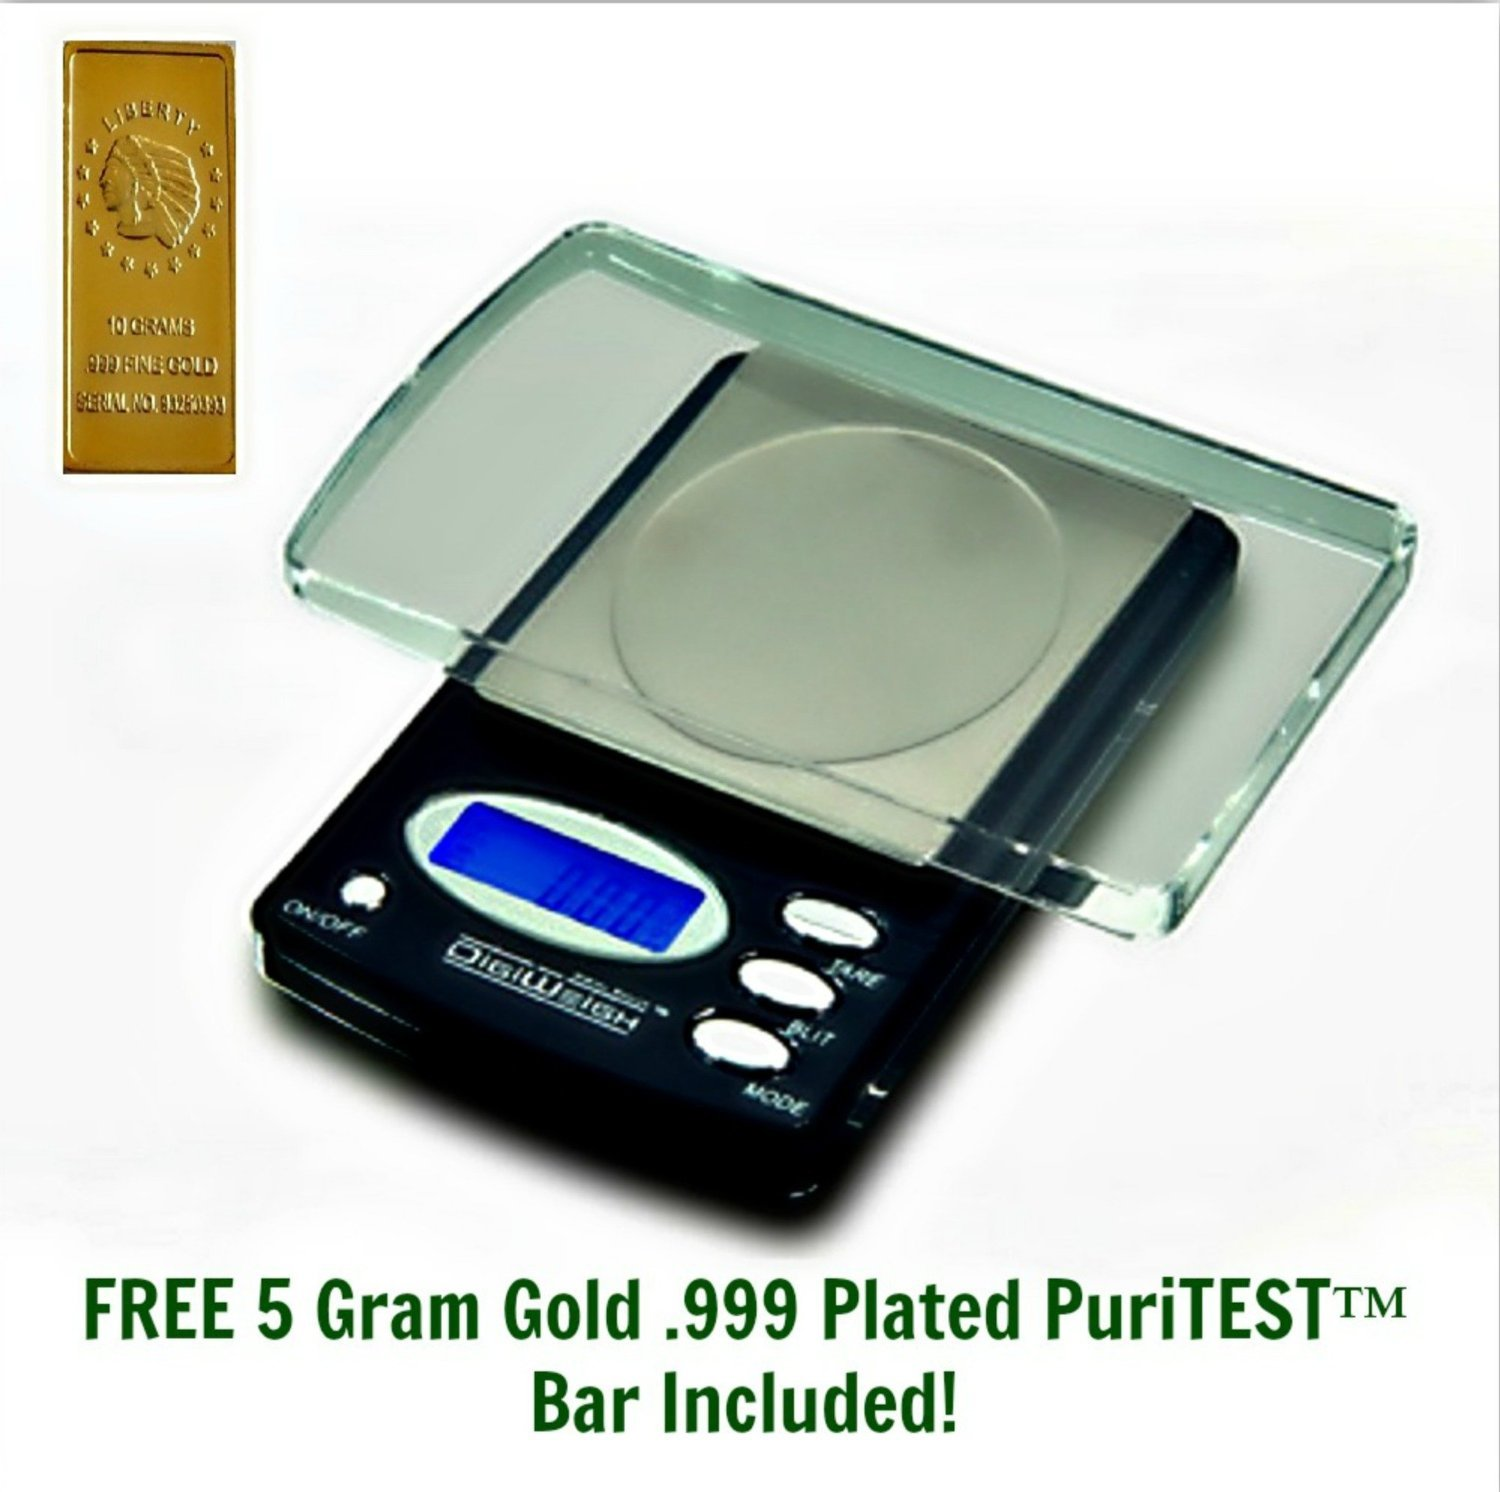 Classroom + Lab Equipment: New 100 x 0.01 Gram ELECTRONIC BALANCE + Calibration Weights! Digital Scale for Lab Chemicals, Lapidary Materials, Specimen & More! Weigh by PuriTEST